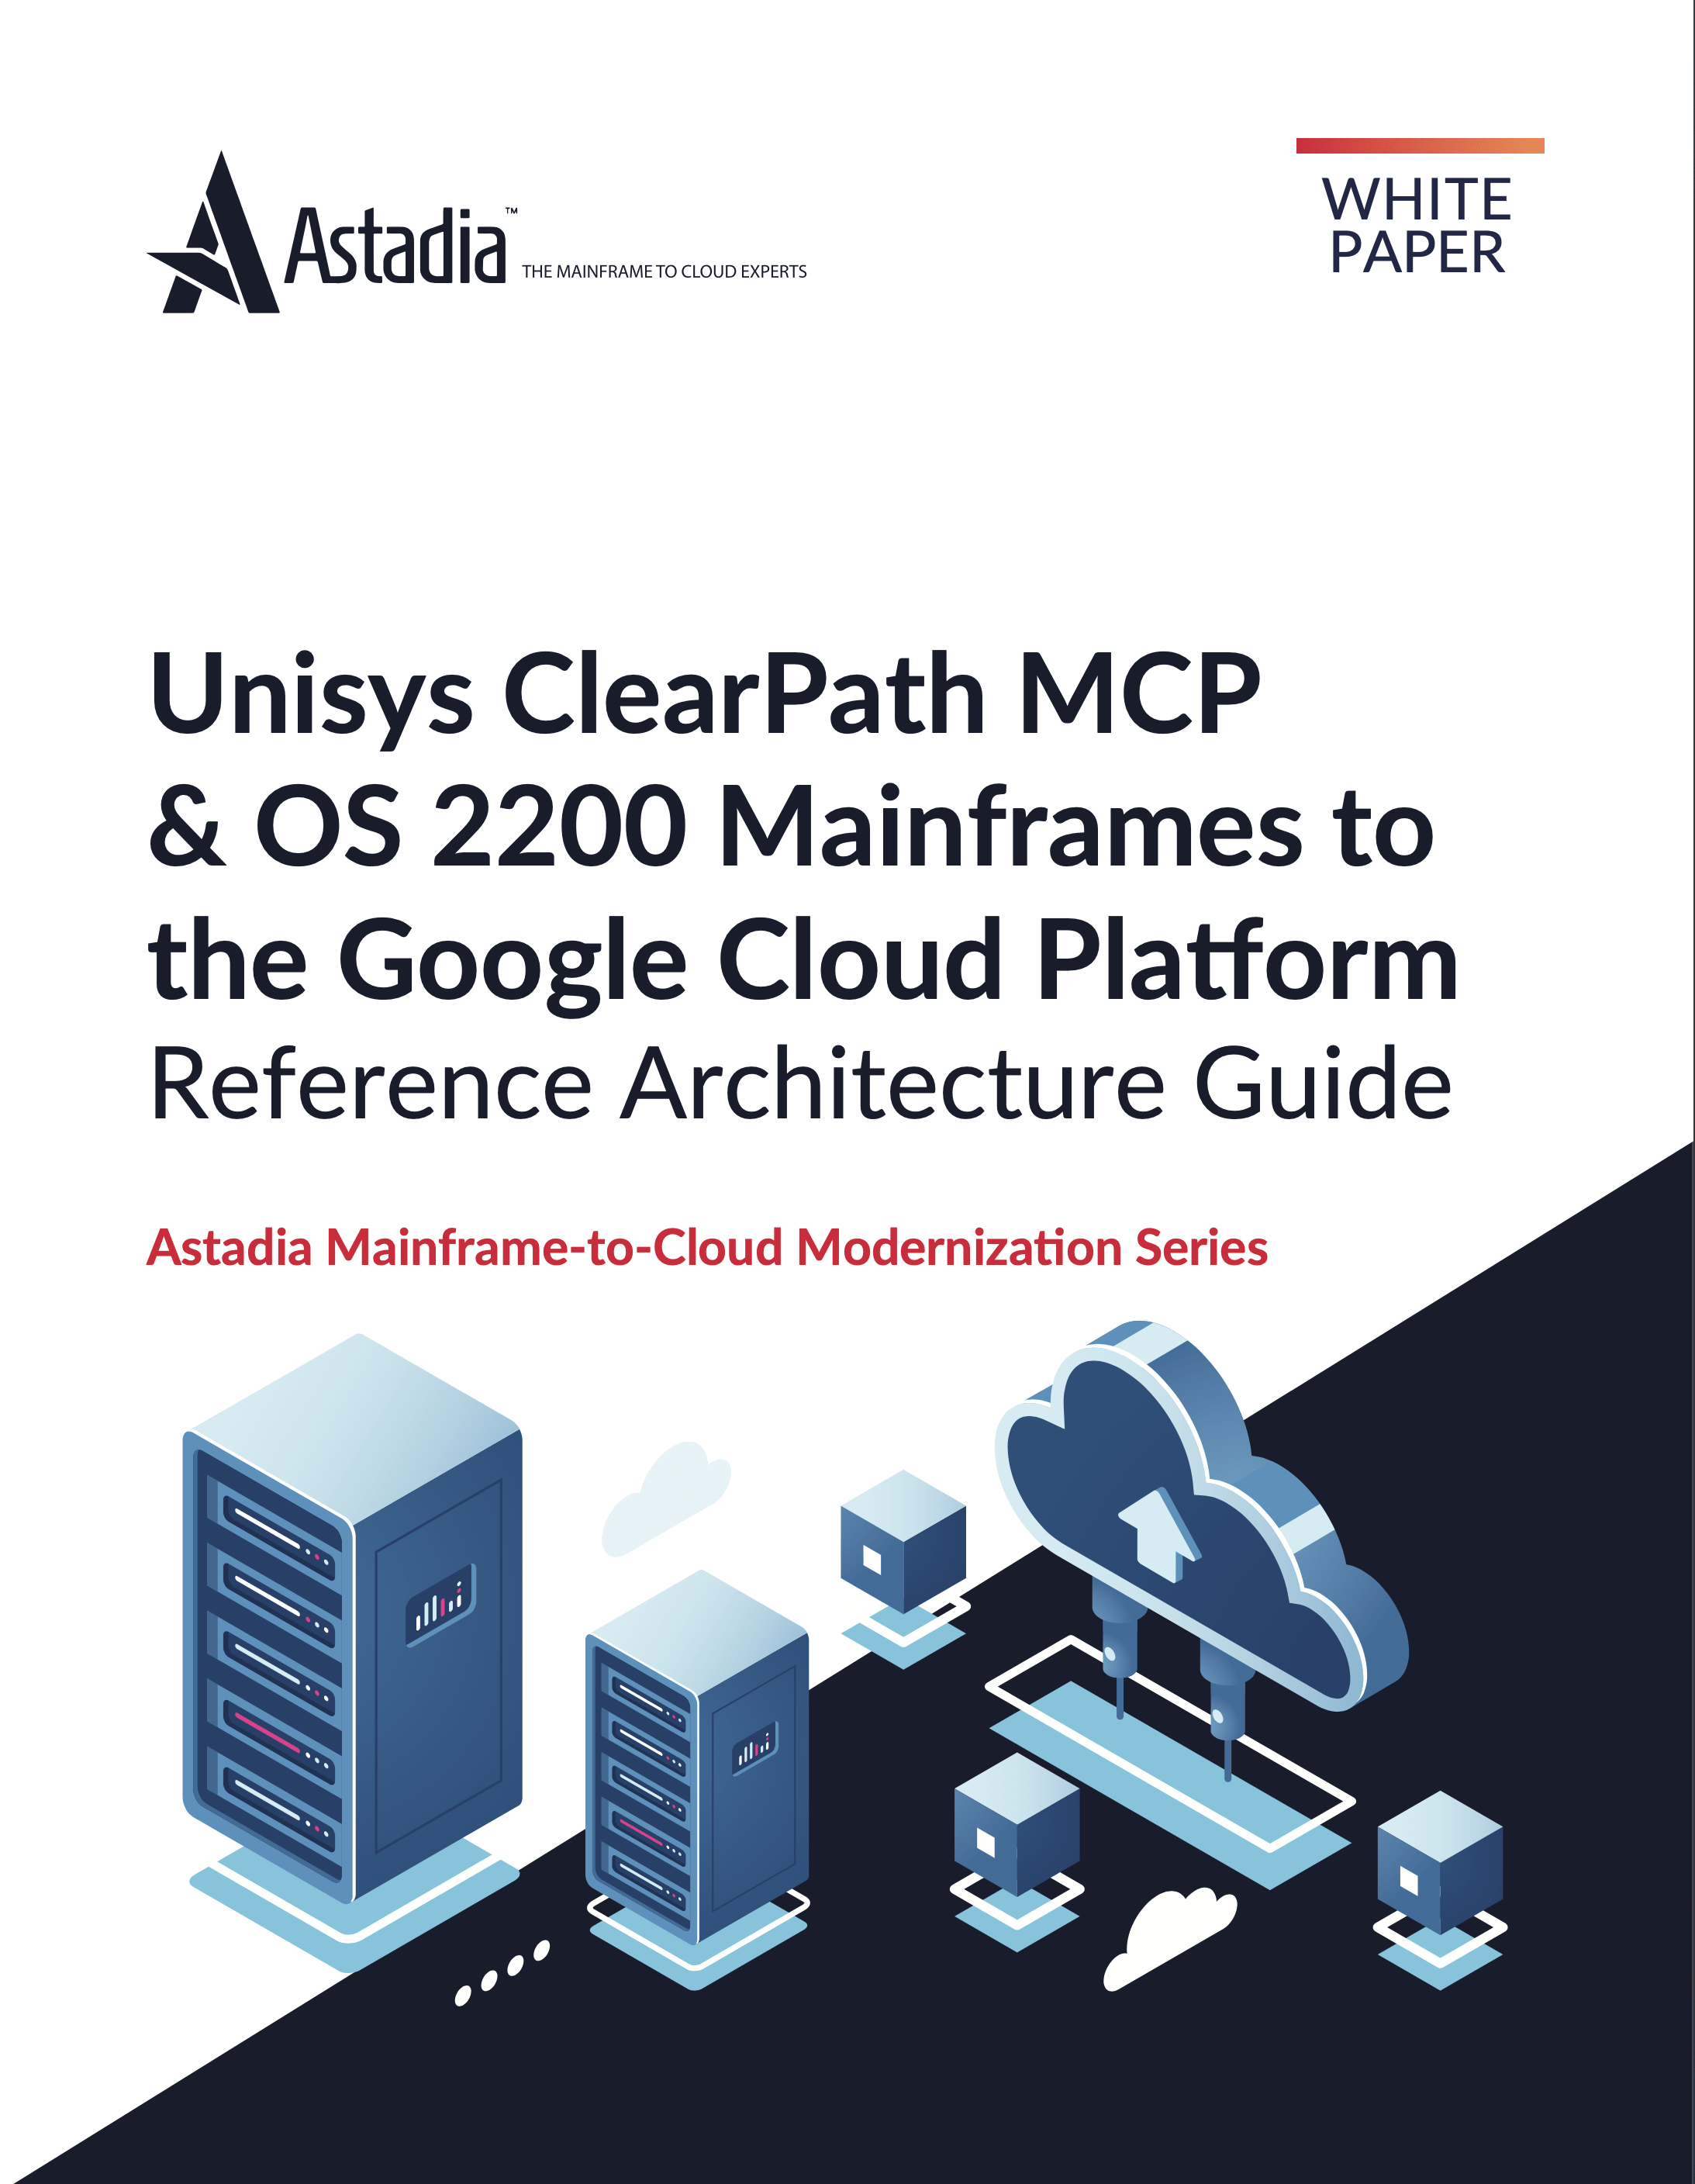 Unisys ClearPath MCP & OS 2200 Mainframes to the Google Cloud Platform